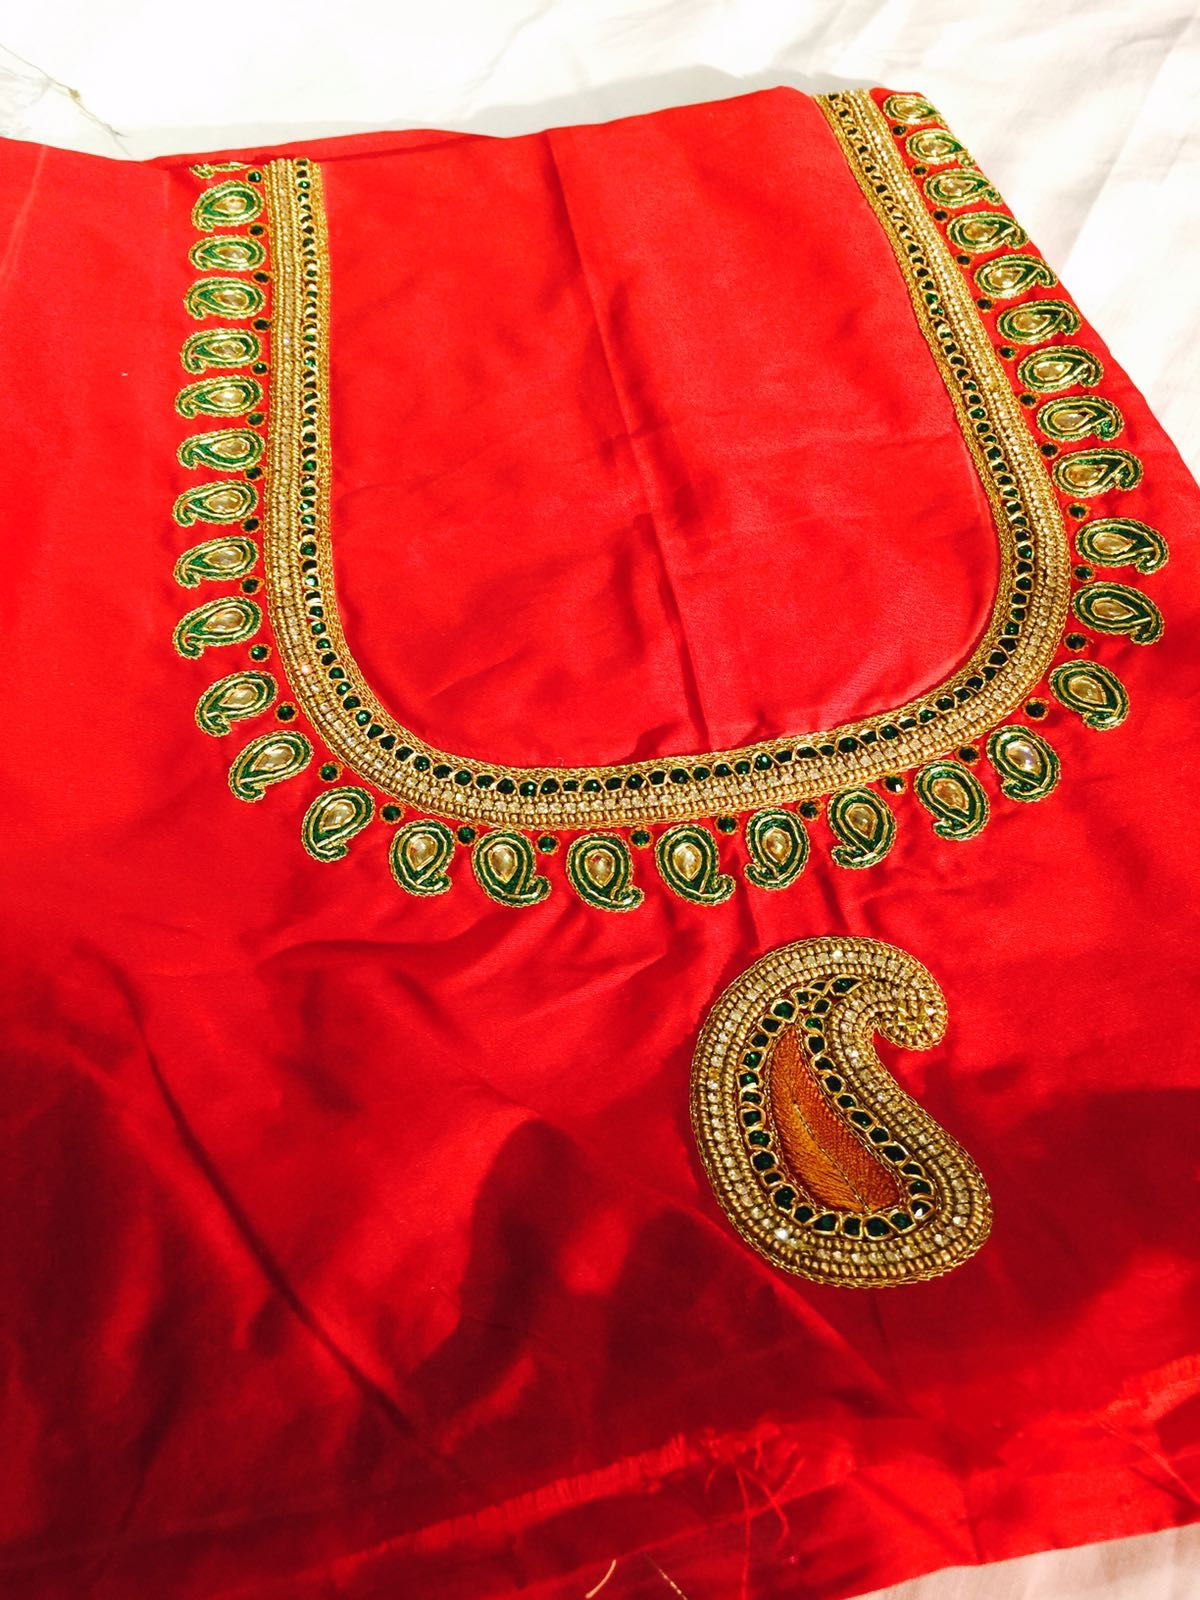 9c386629dd34bd Aari Embroidery, Indian Embroidery, Red Blouses, Cotton Blouses, Simple  Blouse Designs,